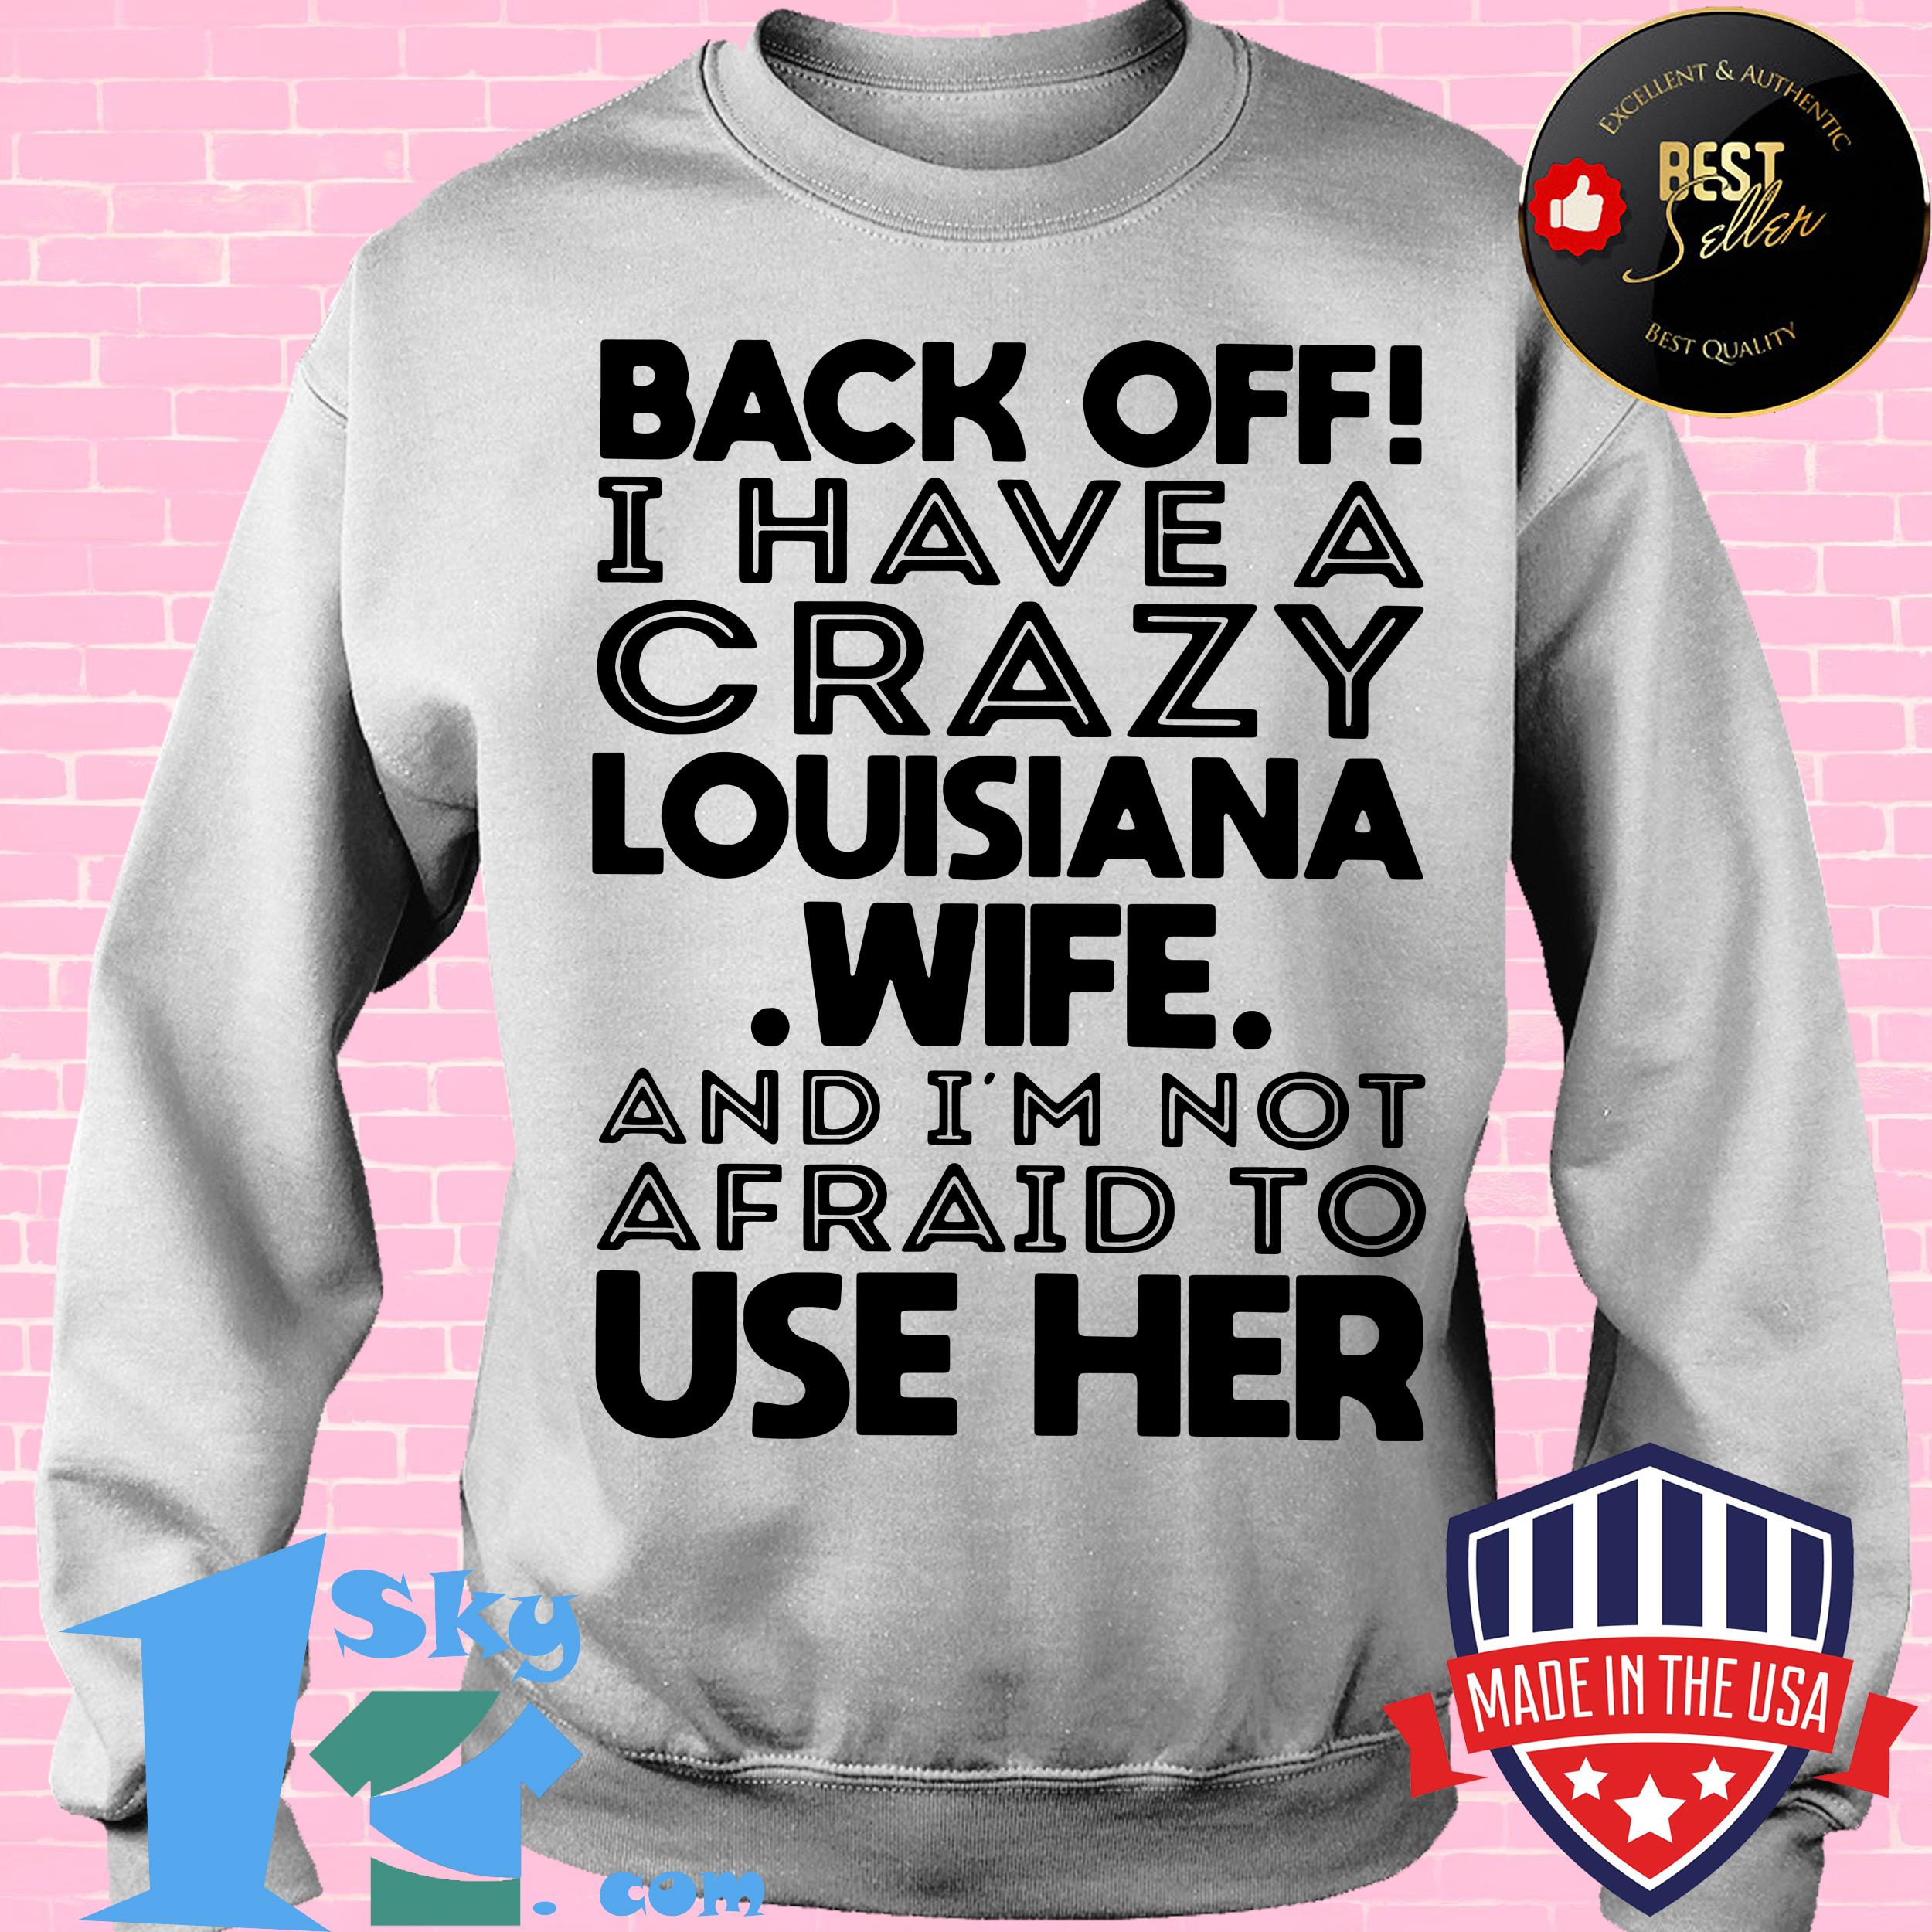 back off i have a crazy louisiana wife and i am not afraid to use her sweatshirt - Back Off I Have A Crazy Louisiana Wife And I Am Not Afraid To Use Her shirt